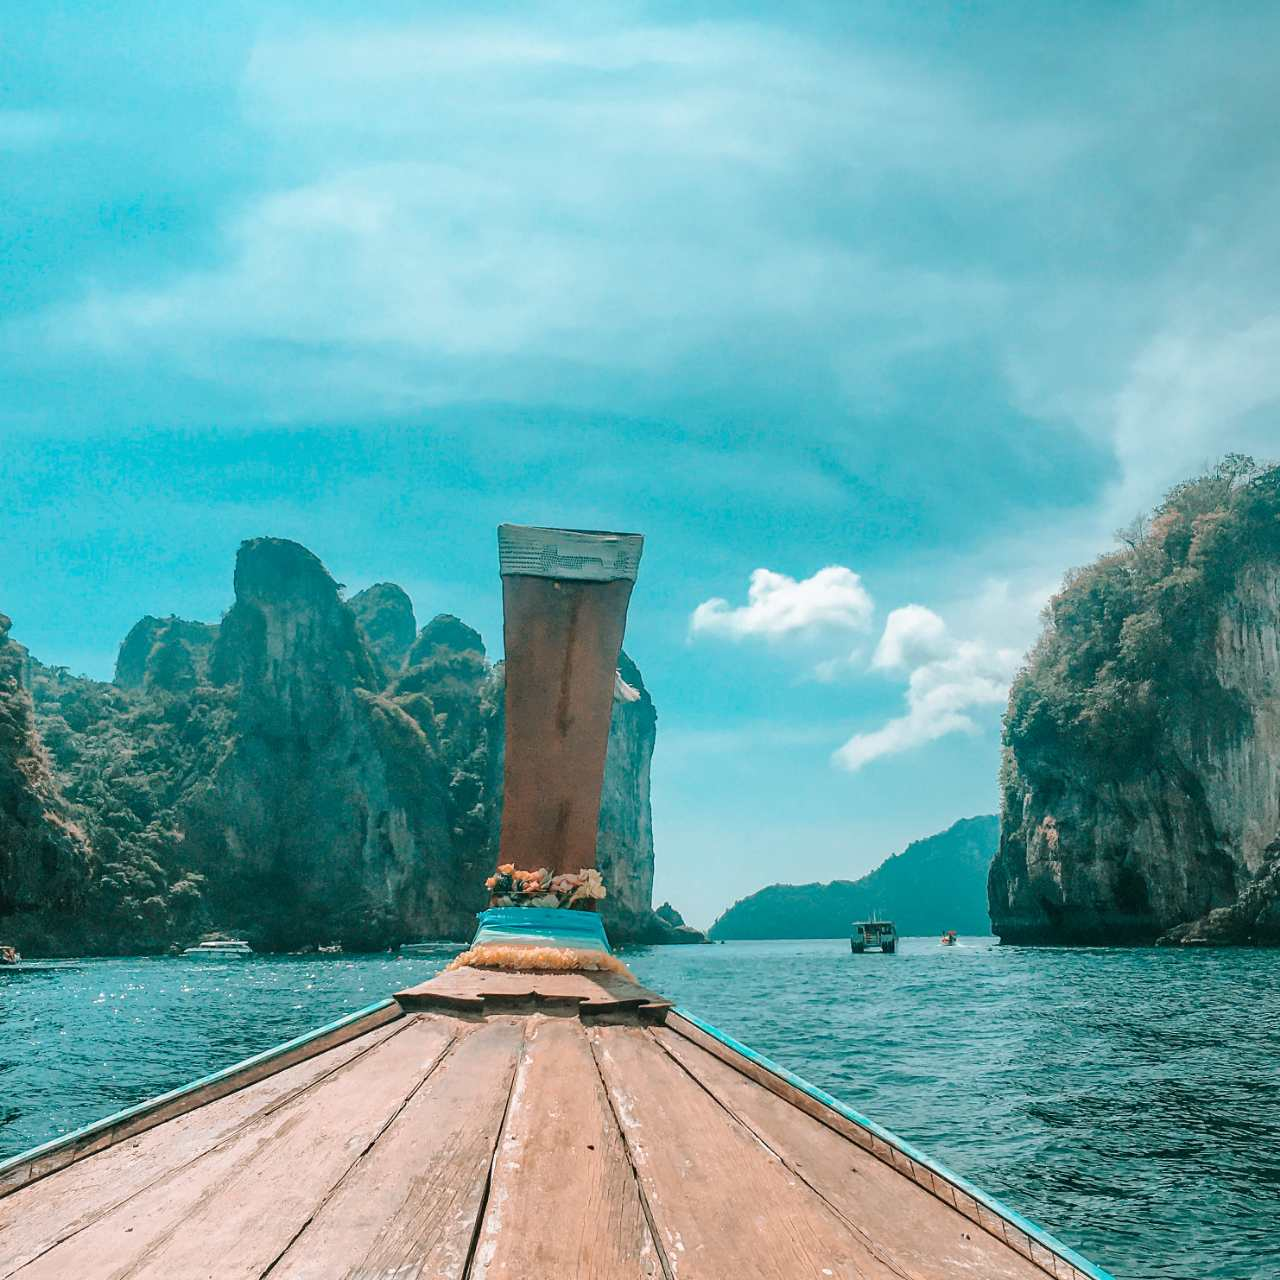 Sailing on a Longtail boat at Koh Phi Phi